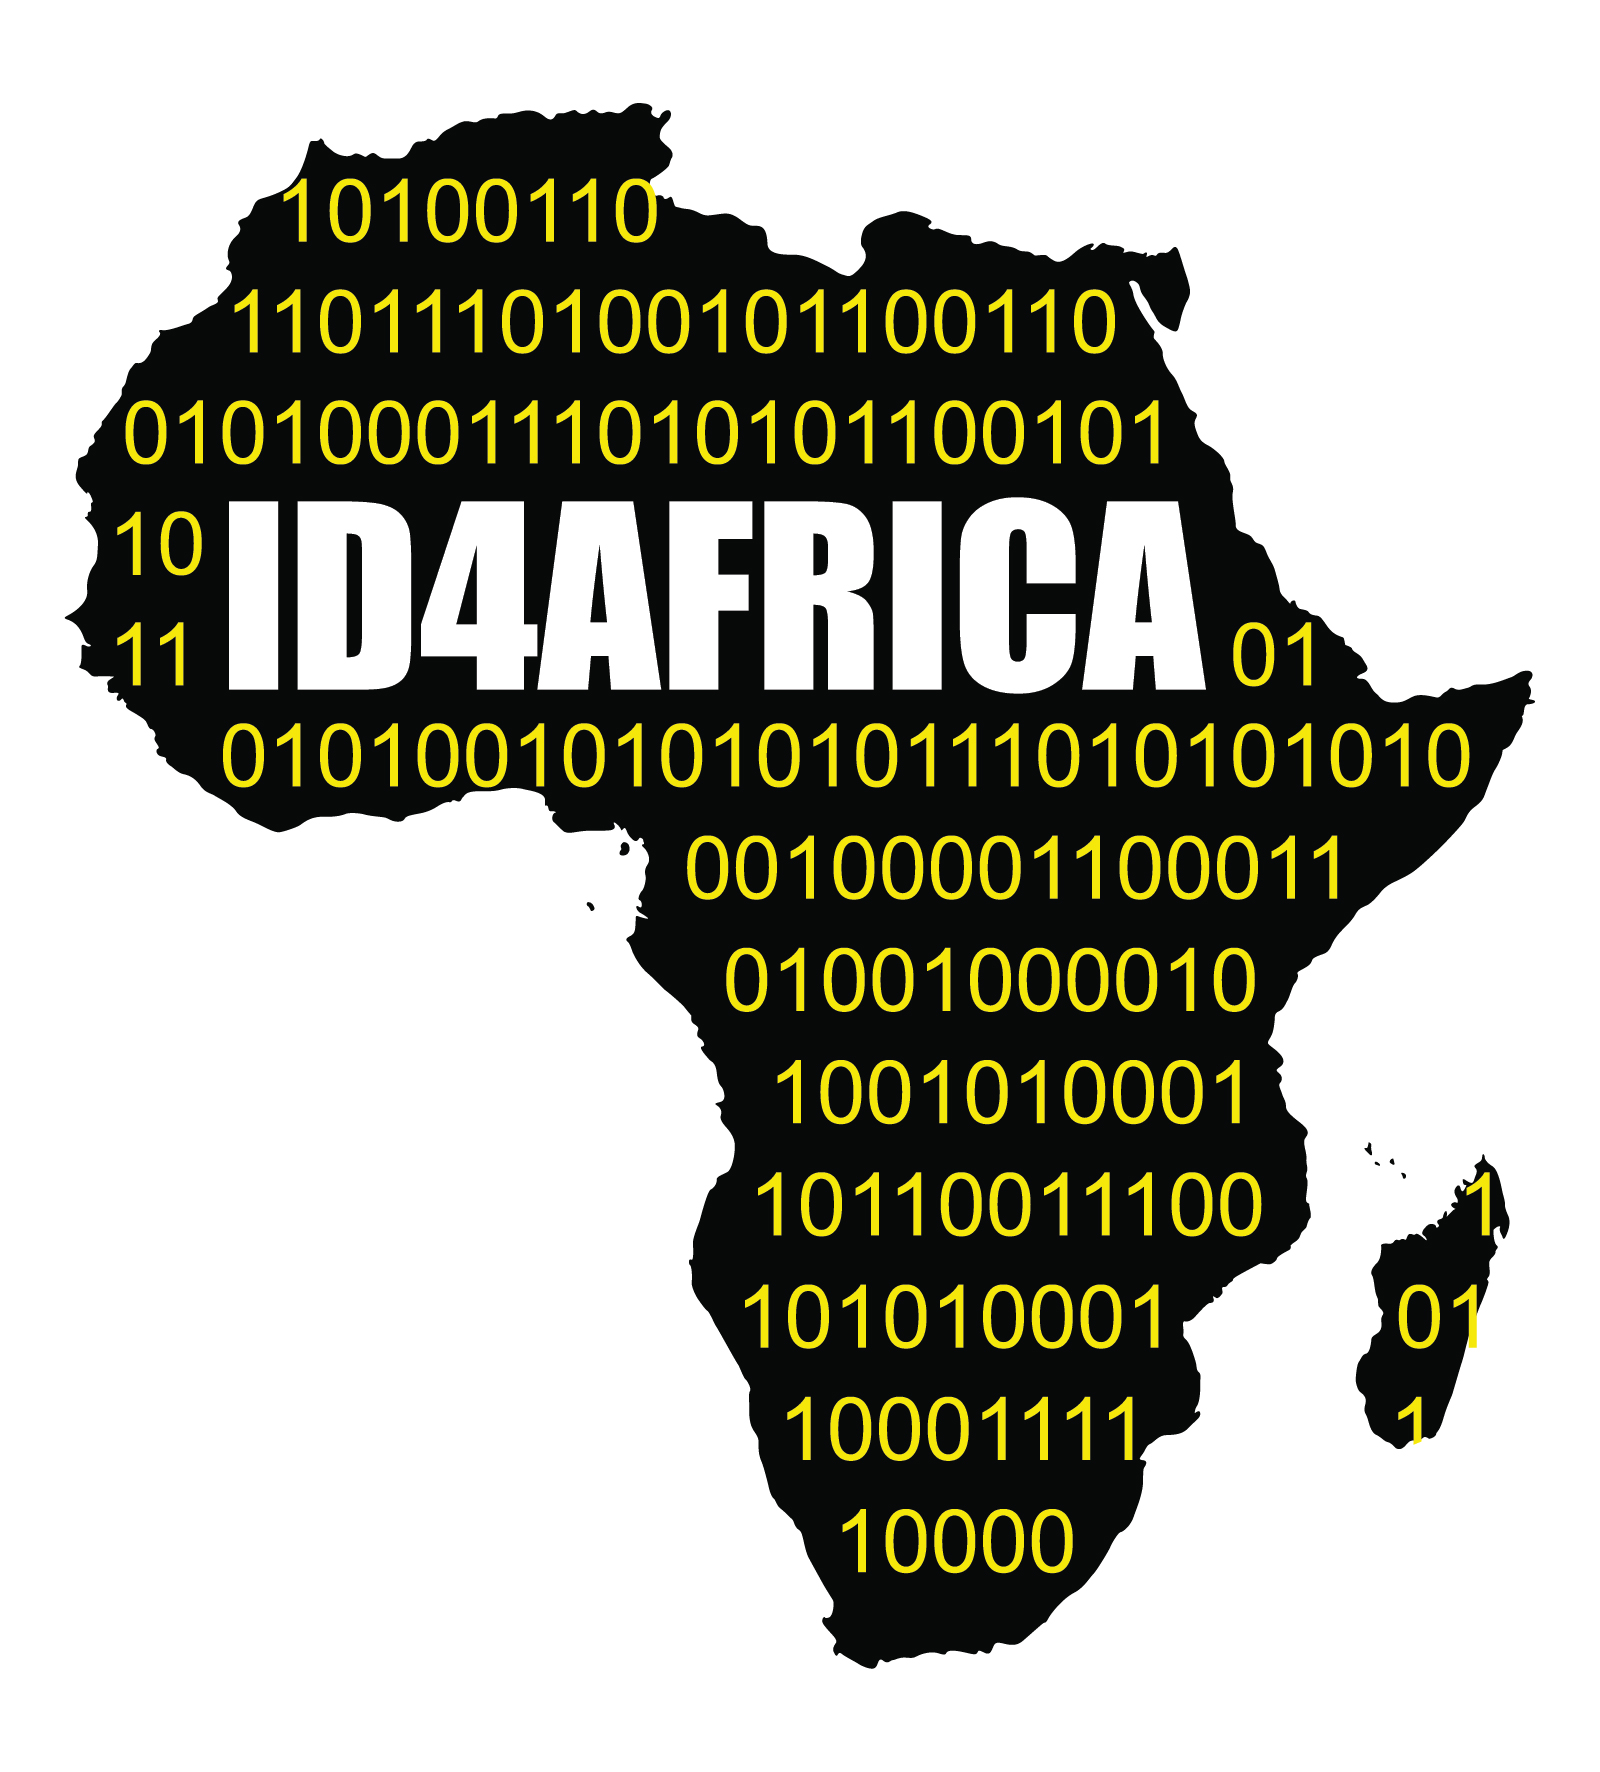 ID4Africa Joins the Secure Identity Alliance as Advisory Observer